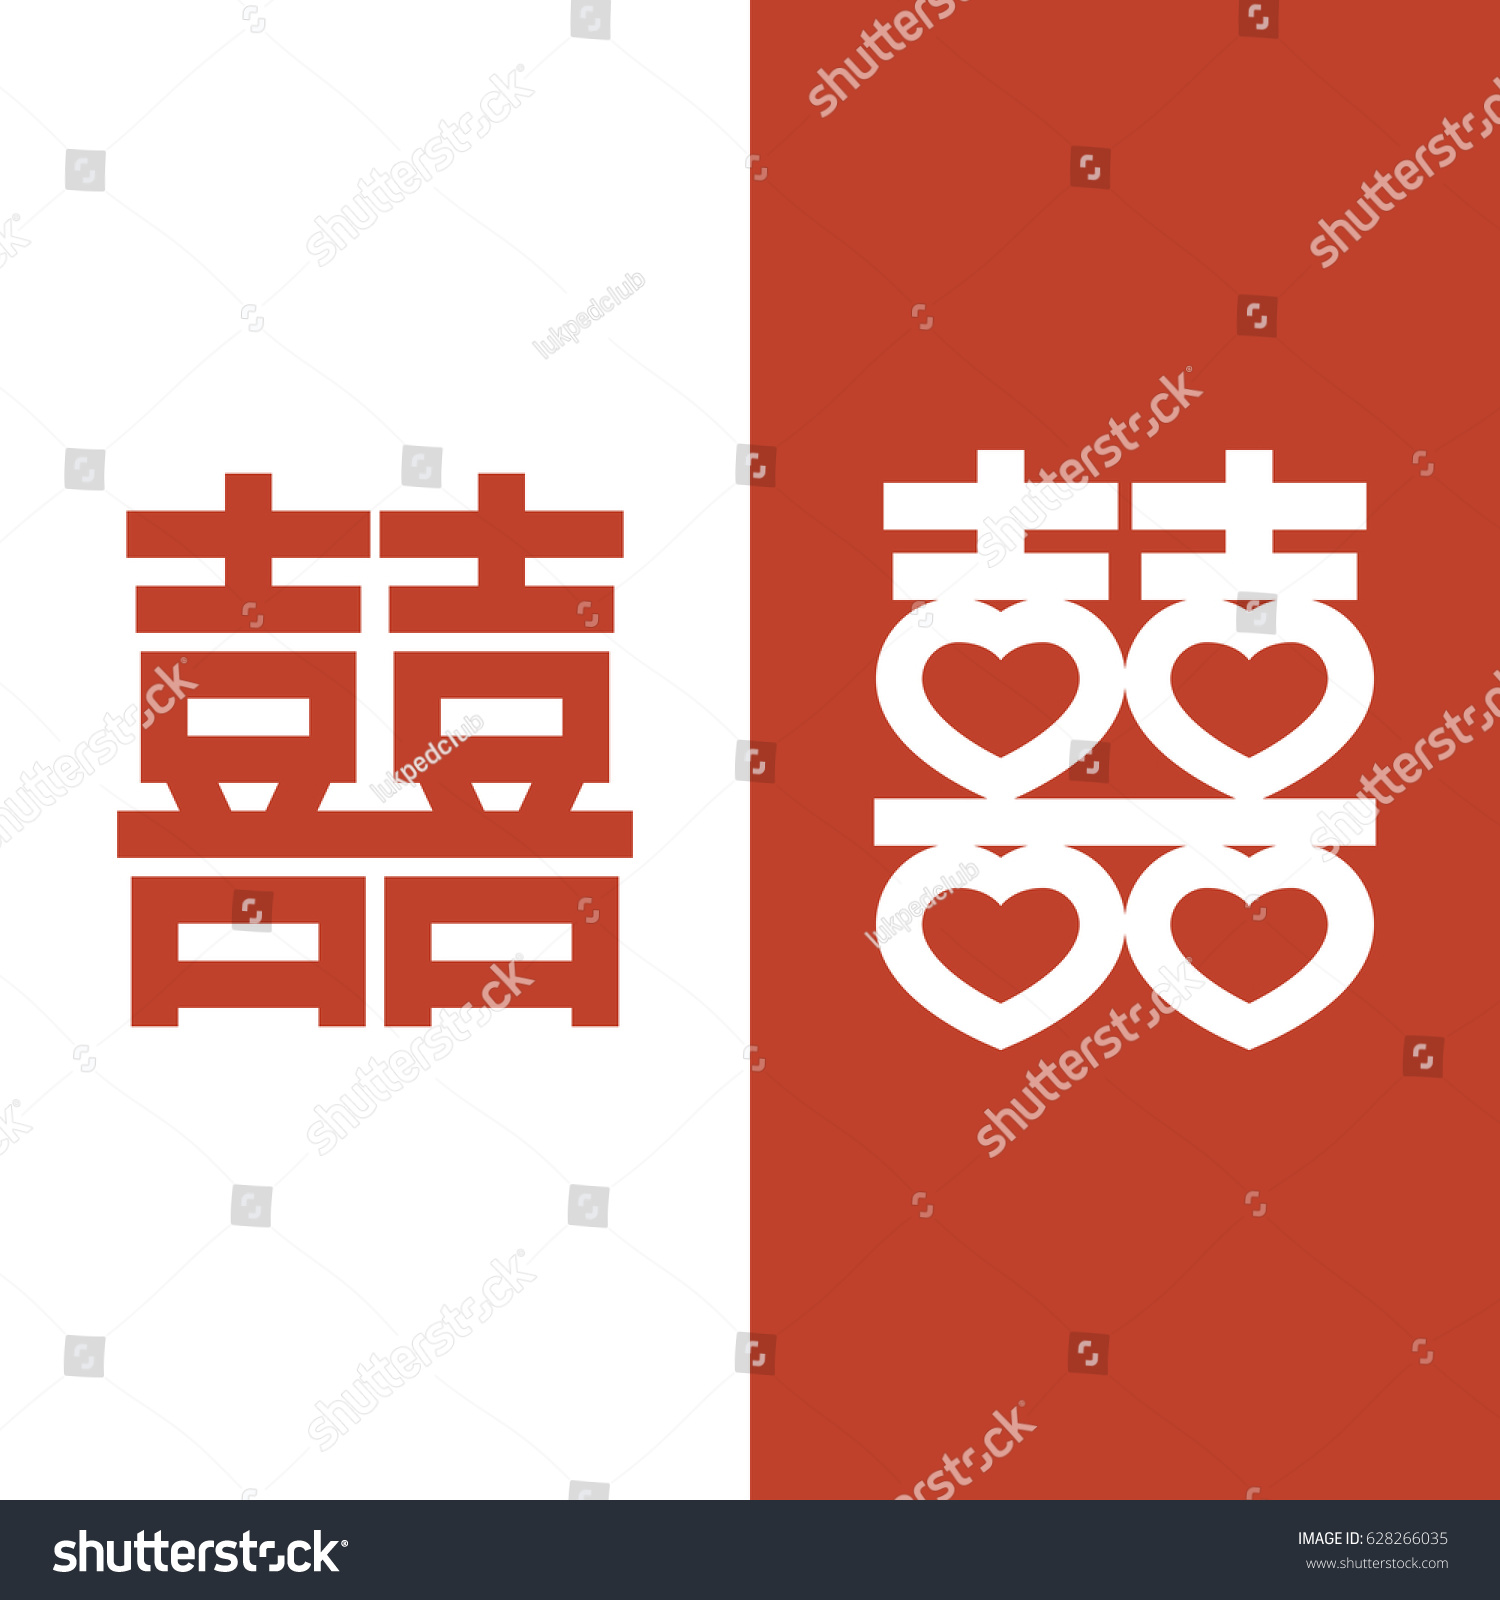 Double happiness sign symbol chinese alphabet stock vector double happiness sign and symbol of chinese alphabet in square shape and heart shape commonly use biocorpaavc Gallery